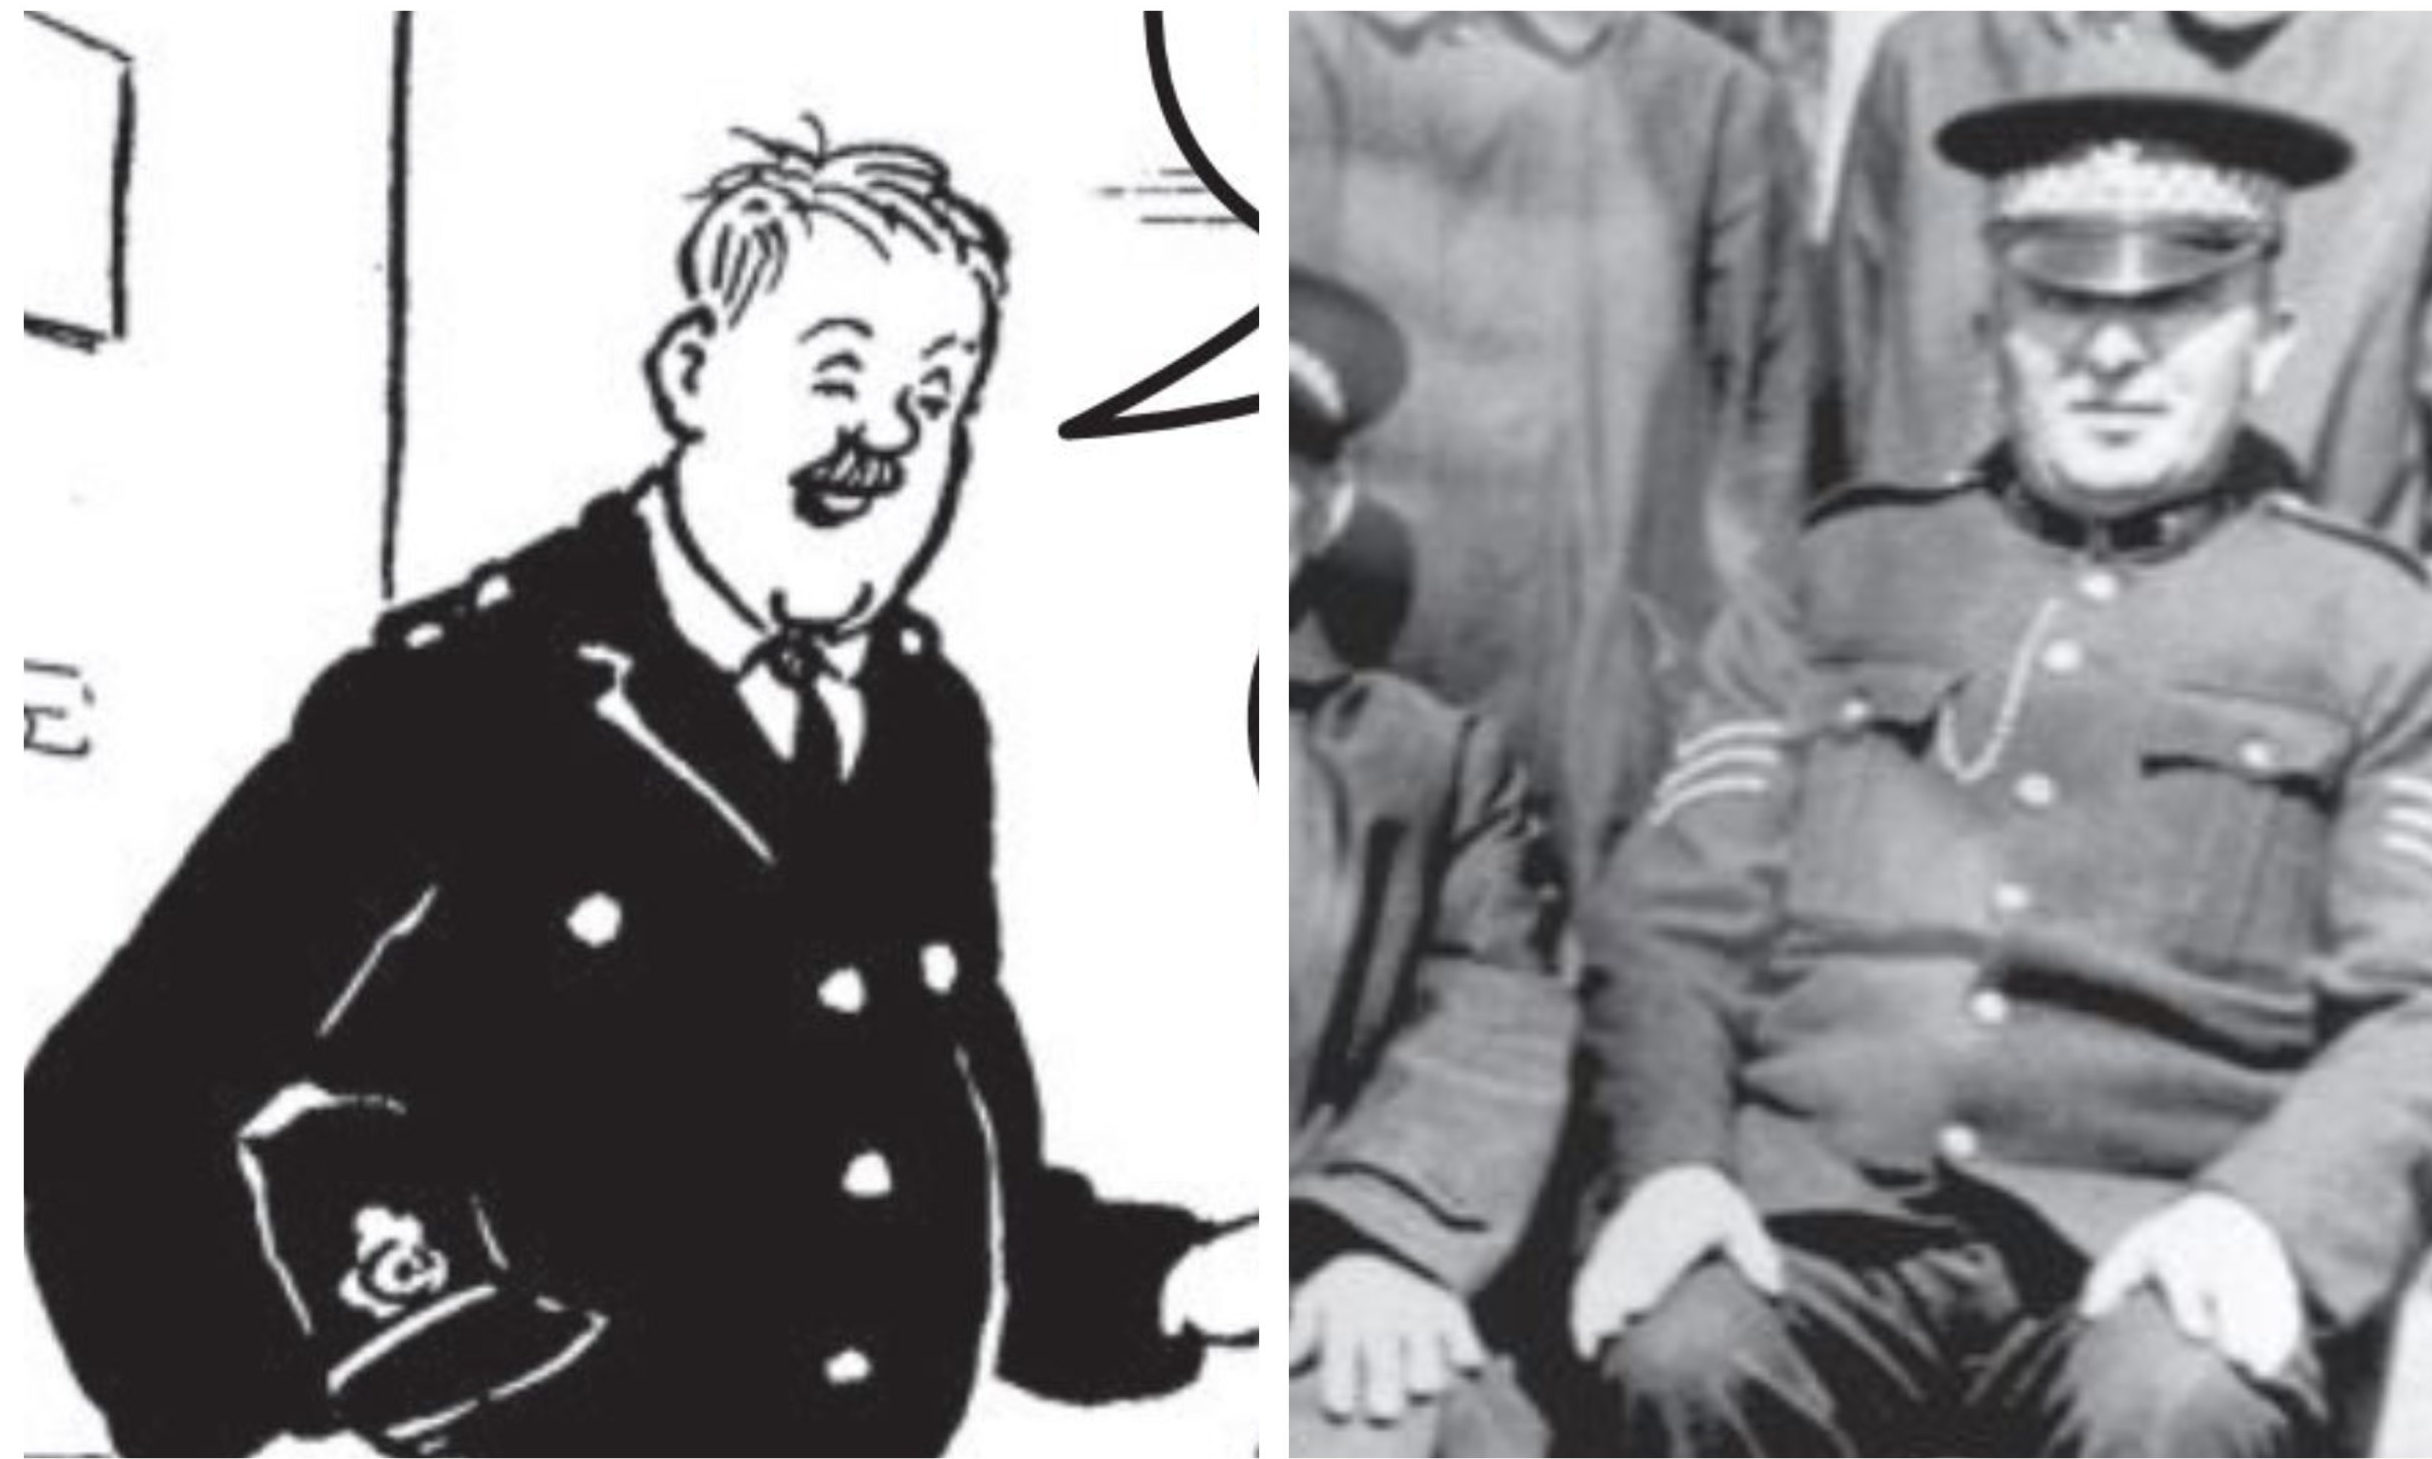 Fifer PC Sandy Marnoch was the inspiration for PC Murdoch of Oor Wullie fame.